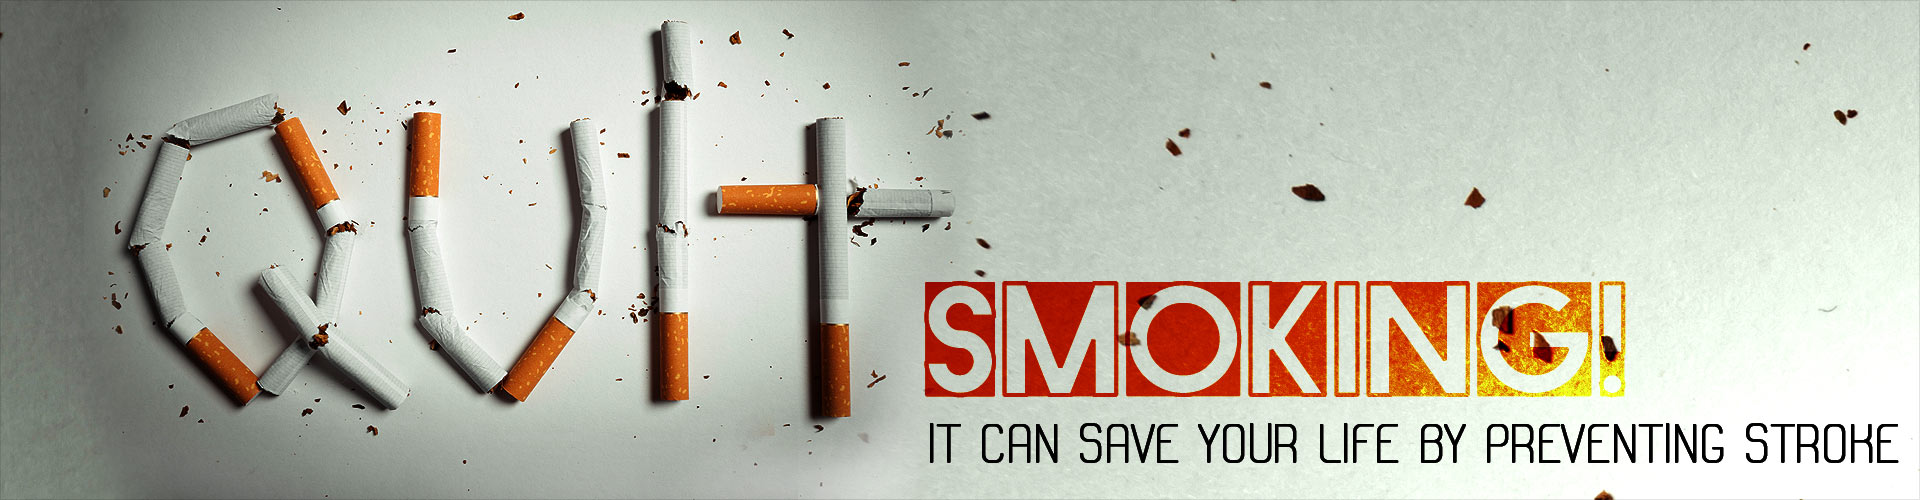 Quit smoking! It can save your life by preventing stroke